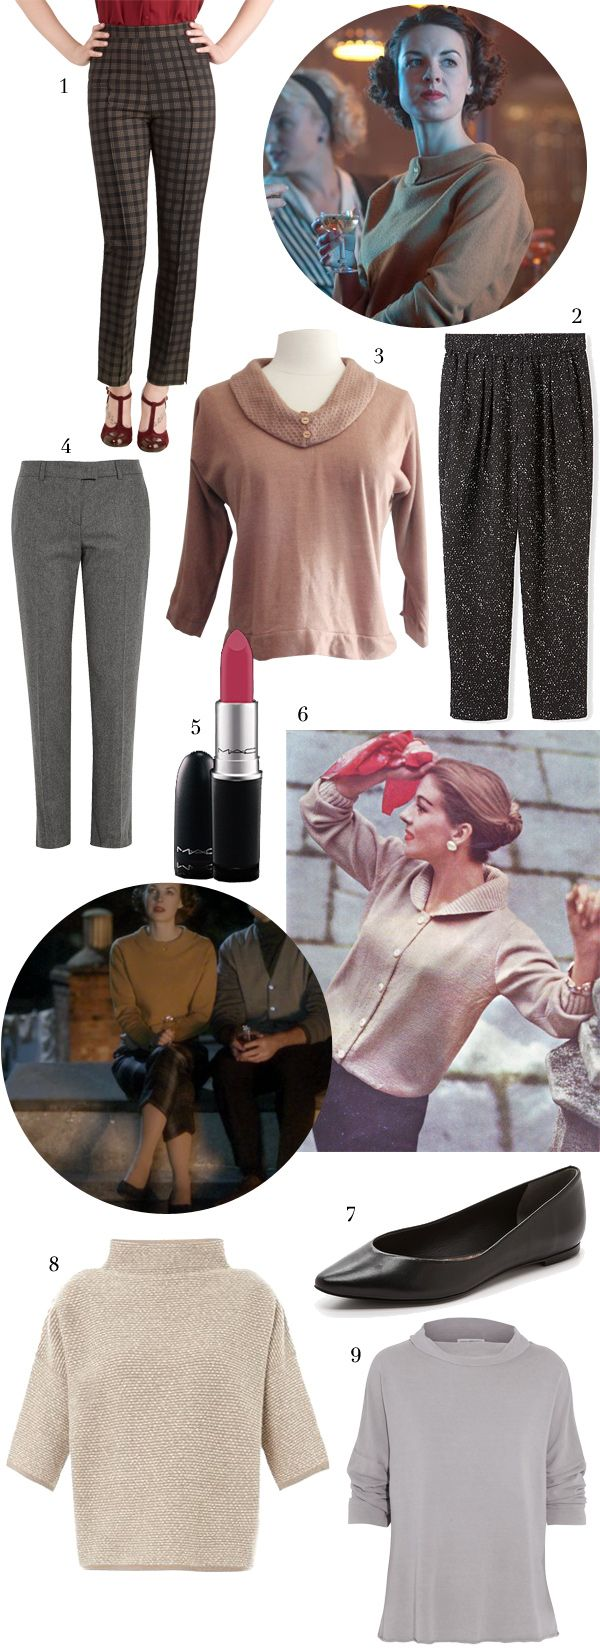 Get the Look: Jenny's Style from Call the Midwife, via WeeBirdy.com. #callthemidwife #50s #vintagefashion